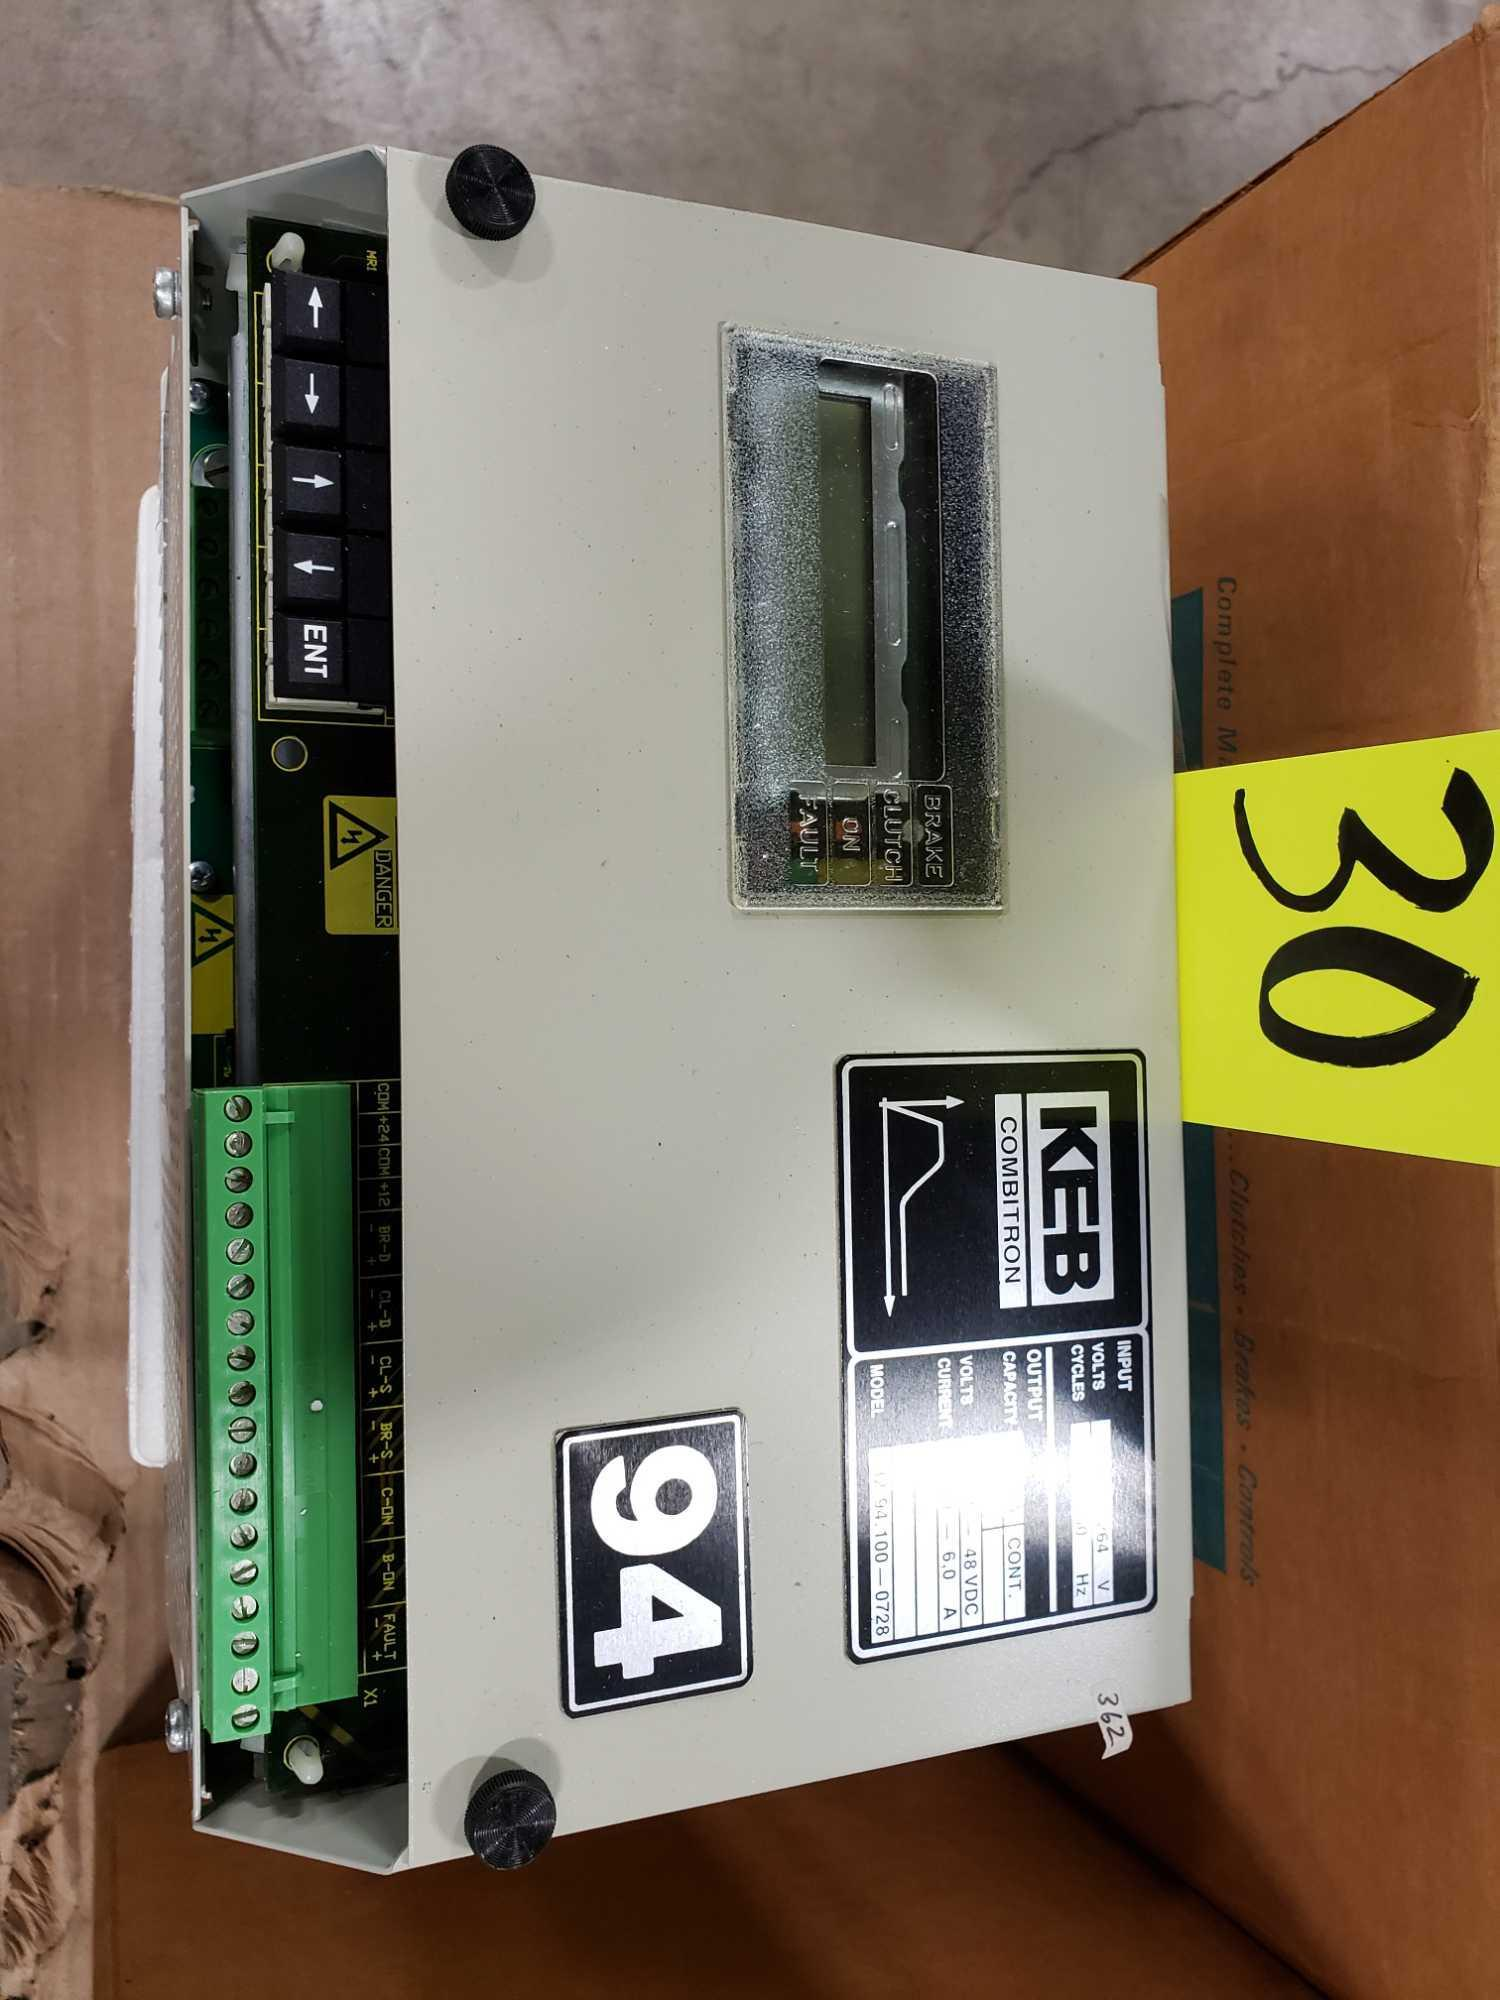 KEB Combitron drive model 32.94.100-0728, 90-264v input, 12-48vdc volt output. New as pictured. - Image 3 of 3